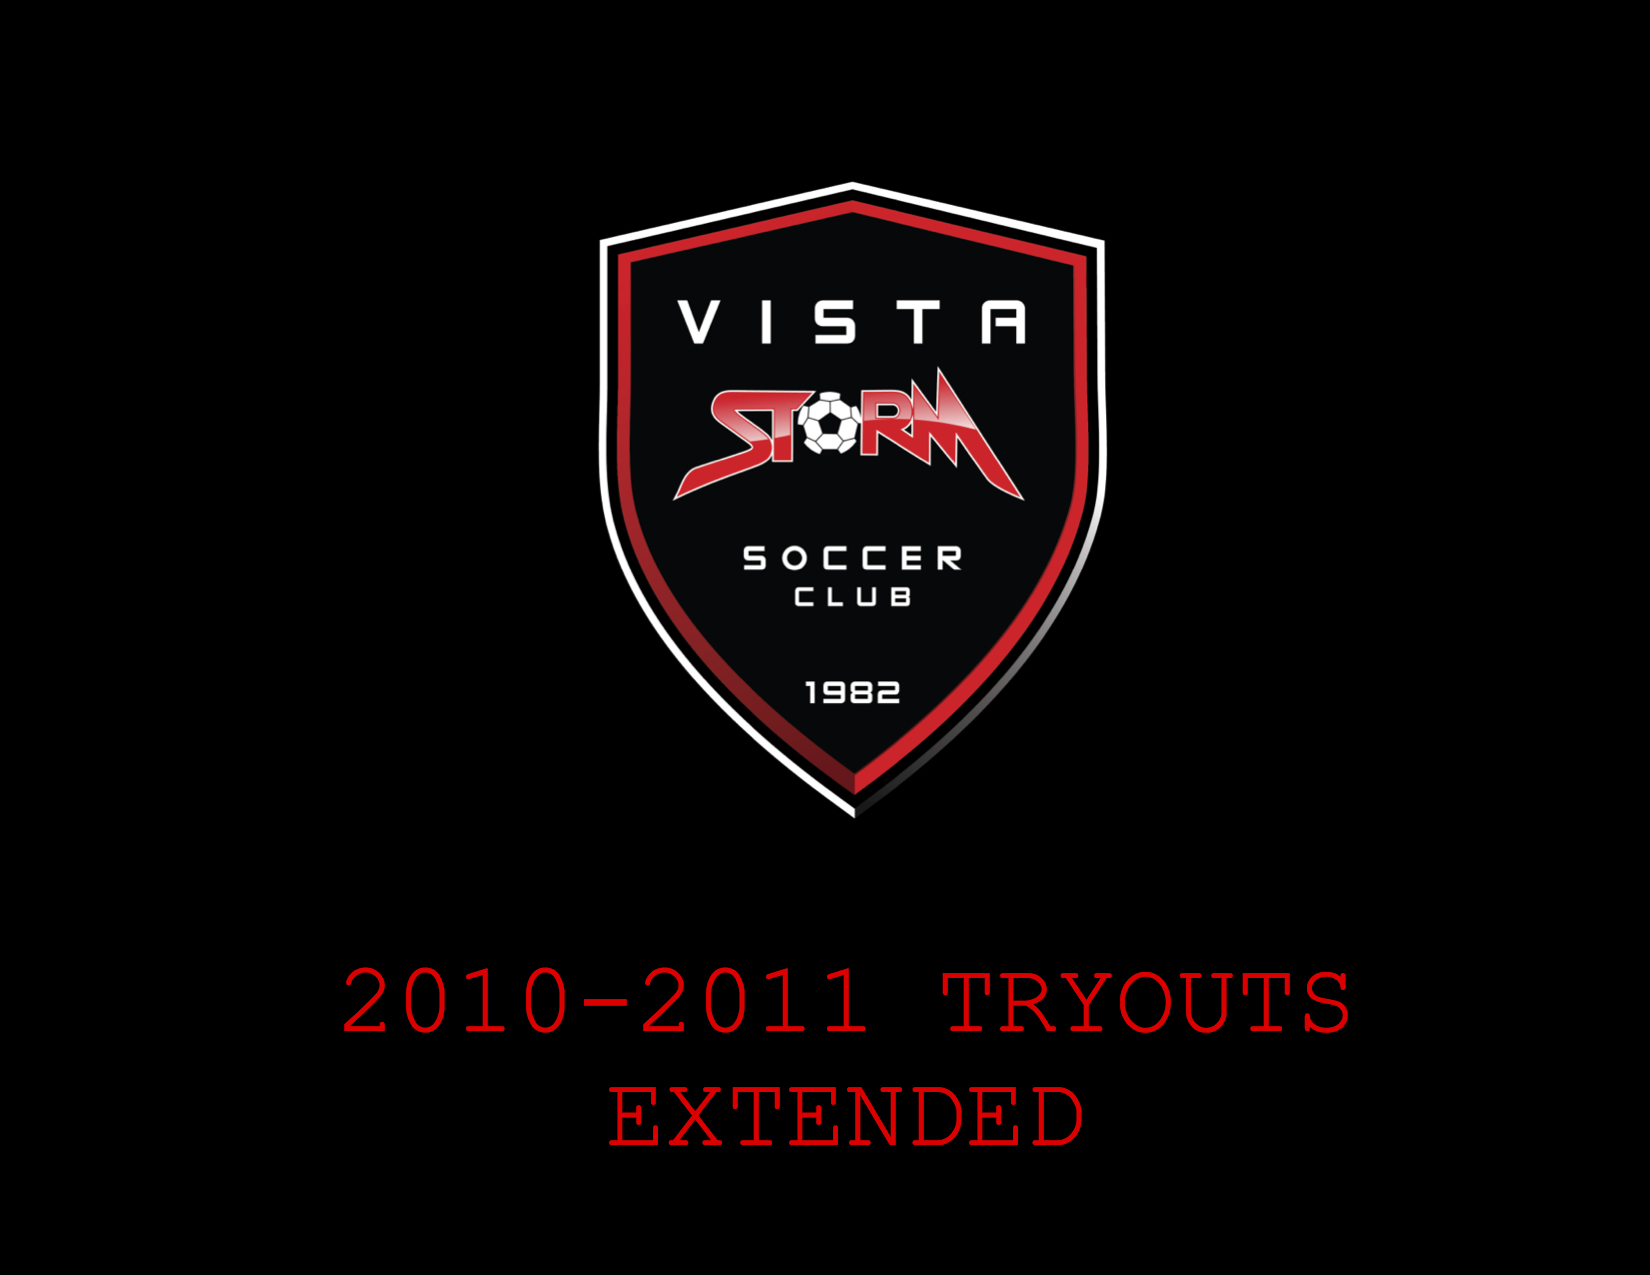 2010-2011 TRYOUTS EXTENDED